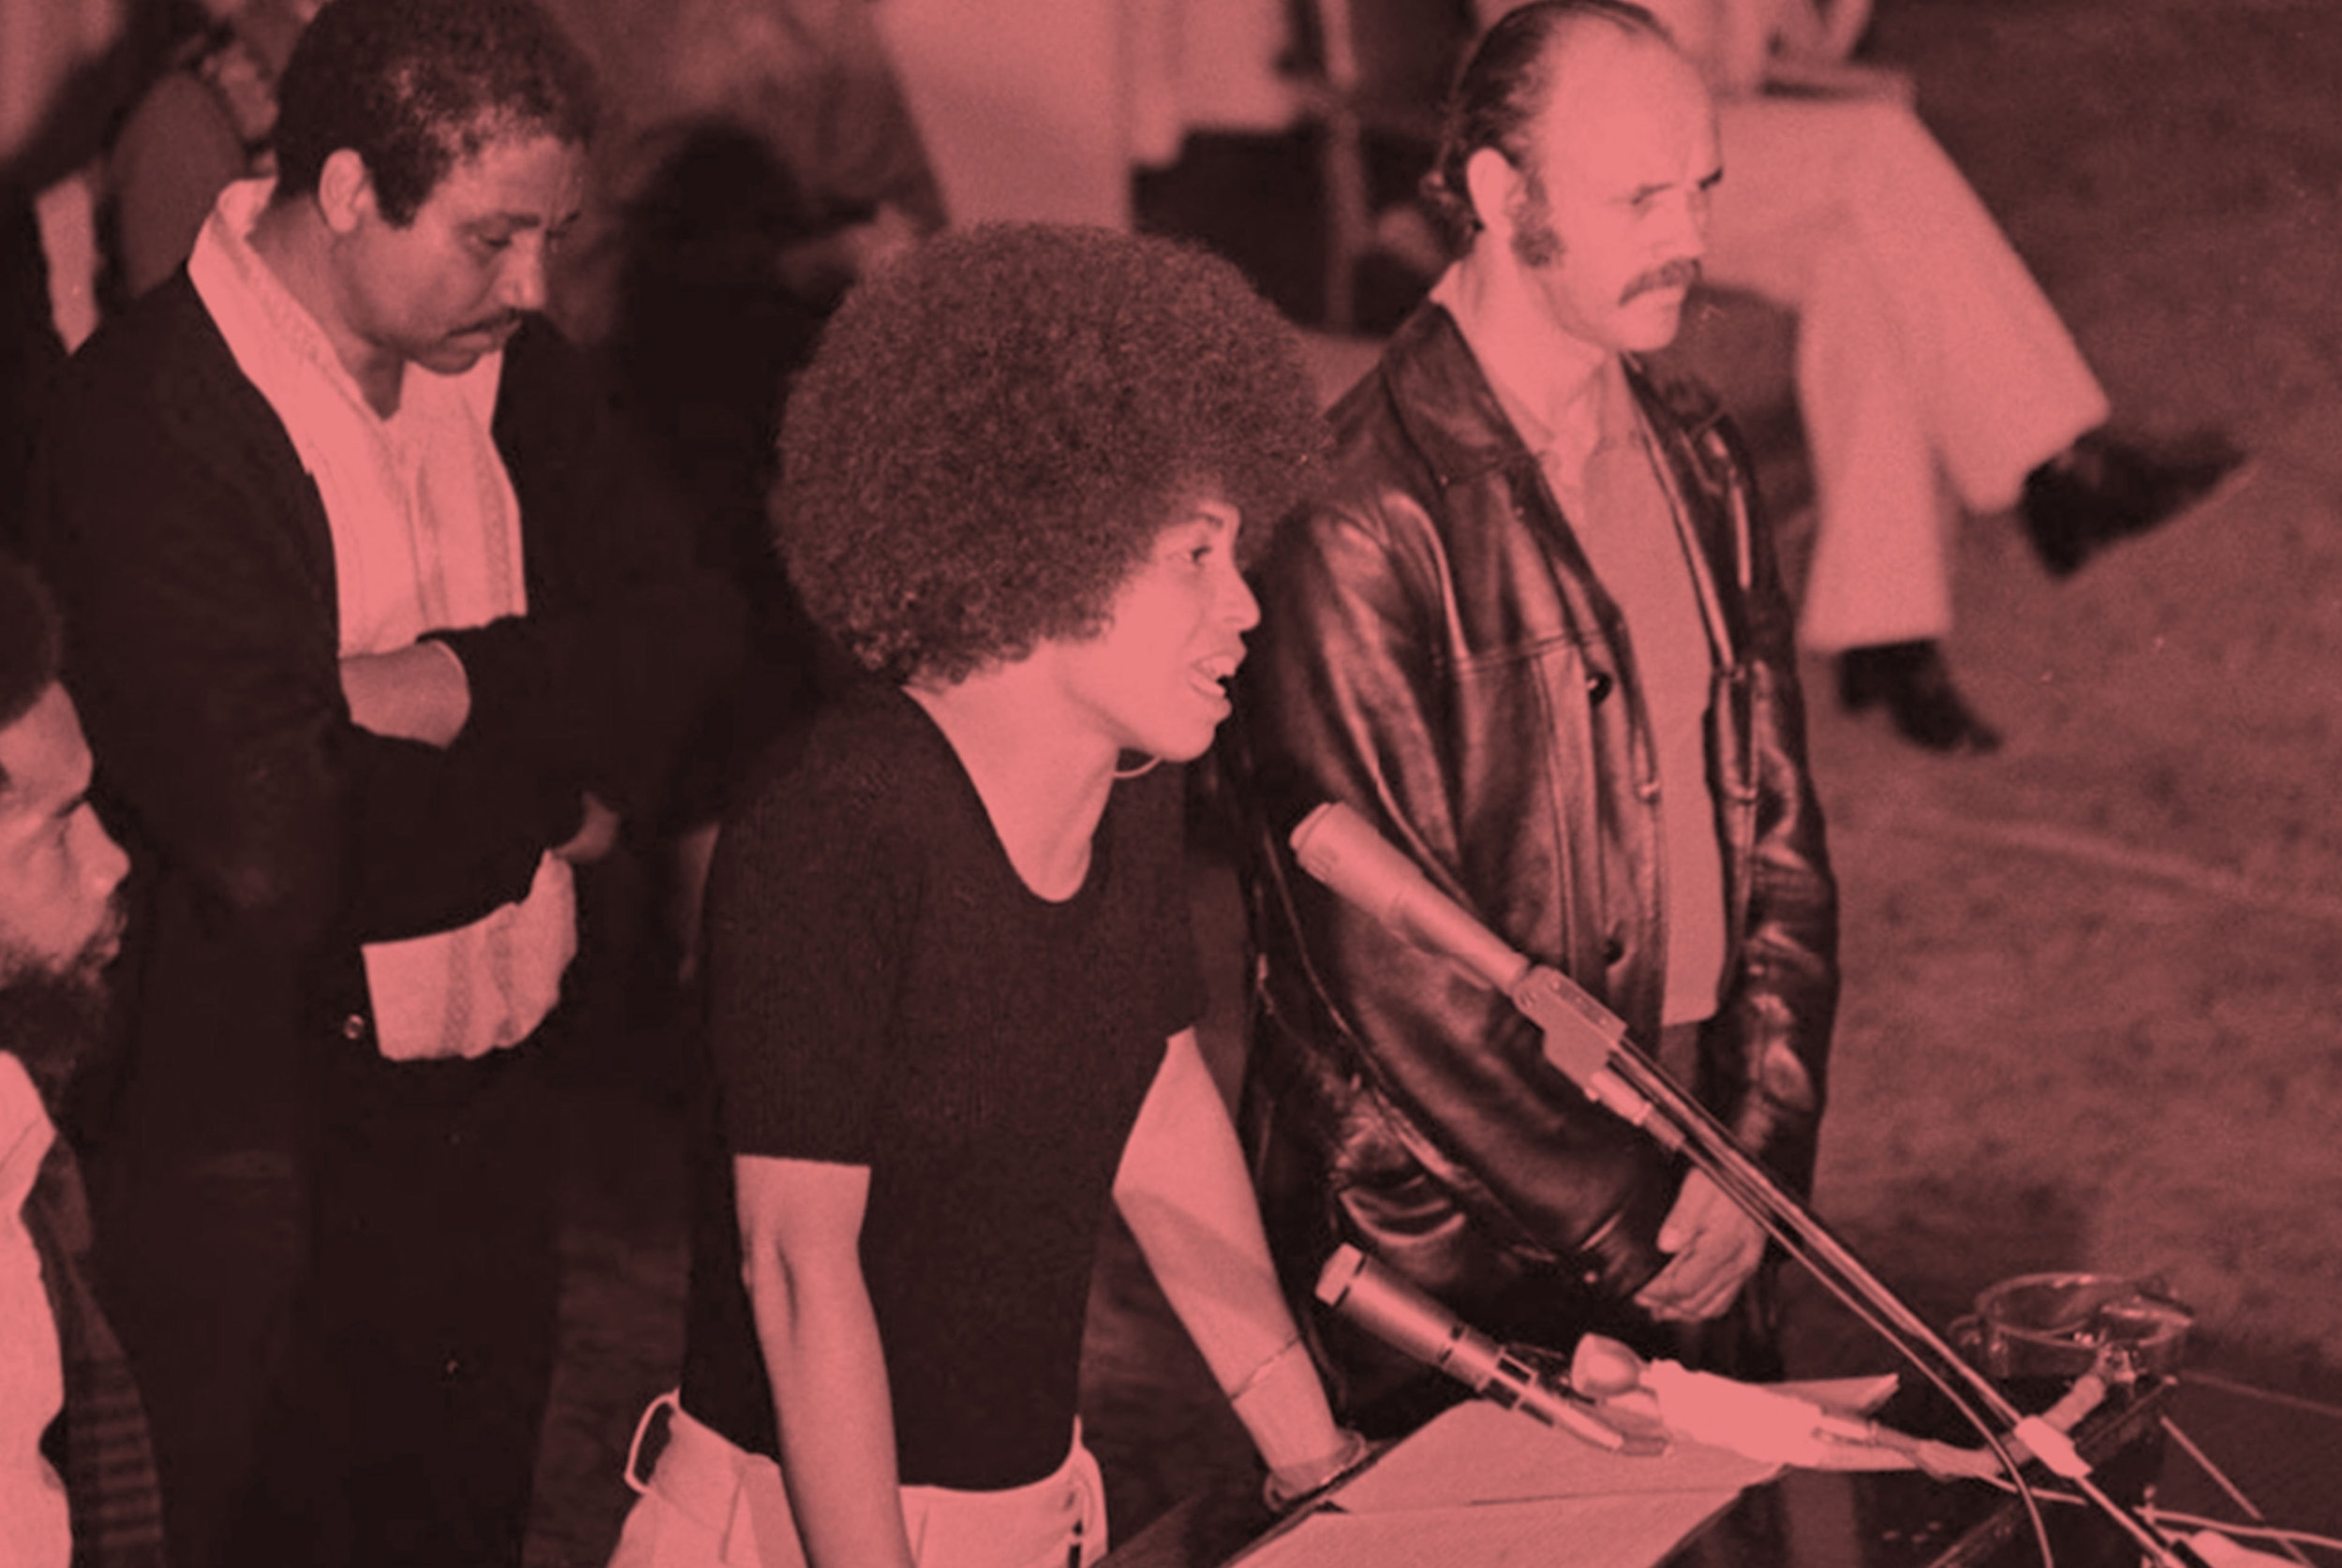 READ 'THE GATES TO FREEDOM'   Black activist, Angela Davis , was acquitted after a 13 week trial and gave this powerful speech on her release.